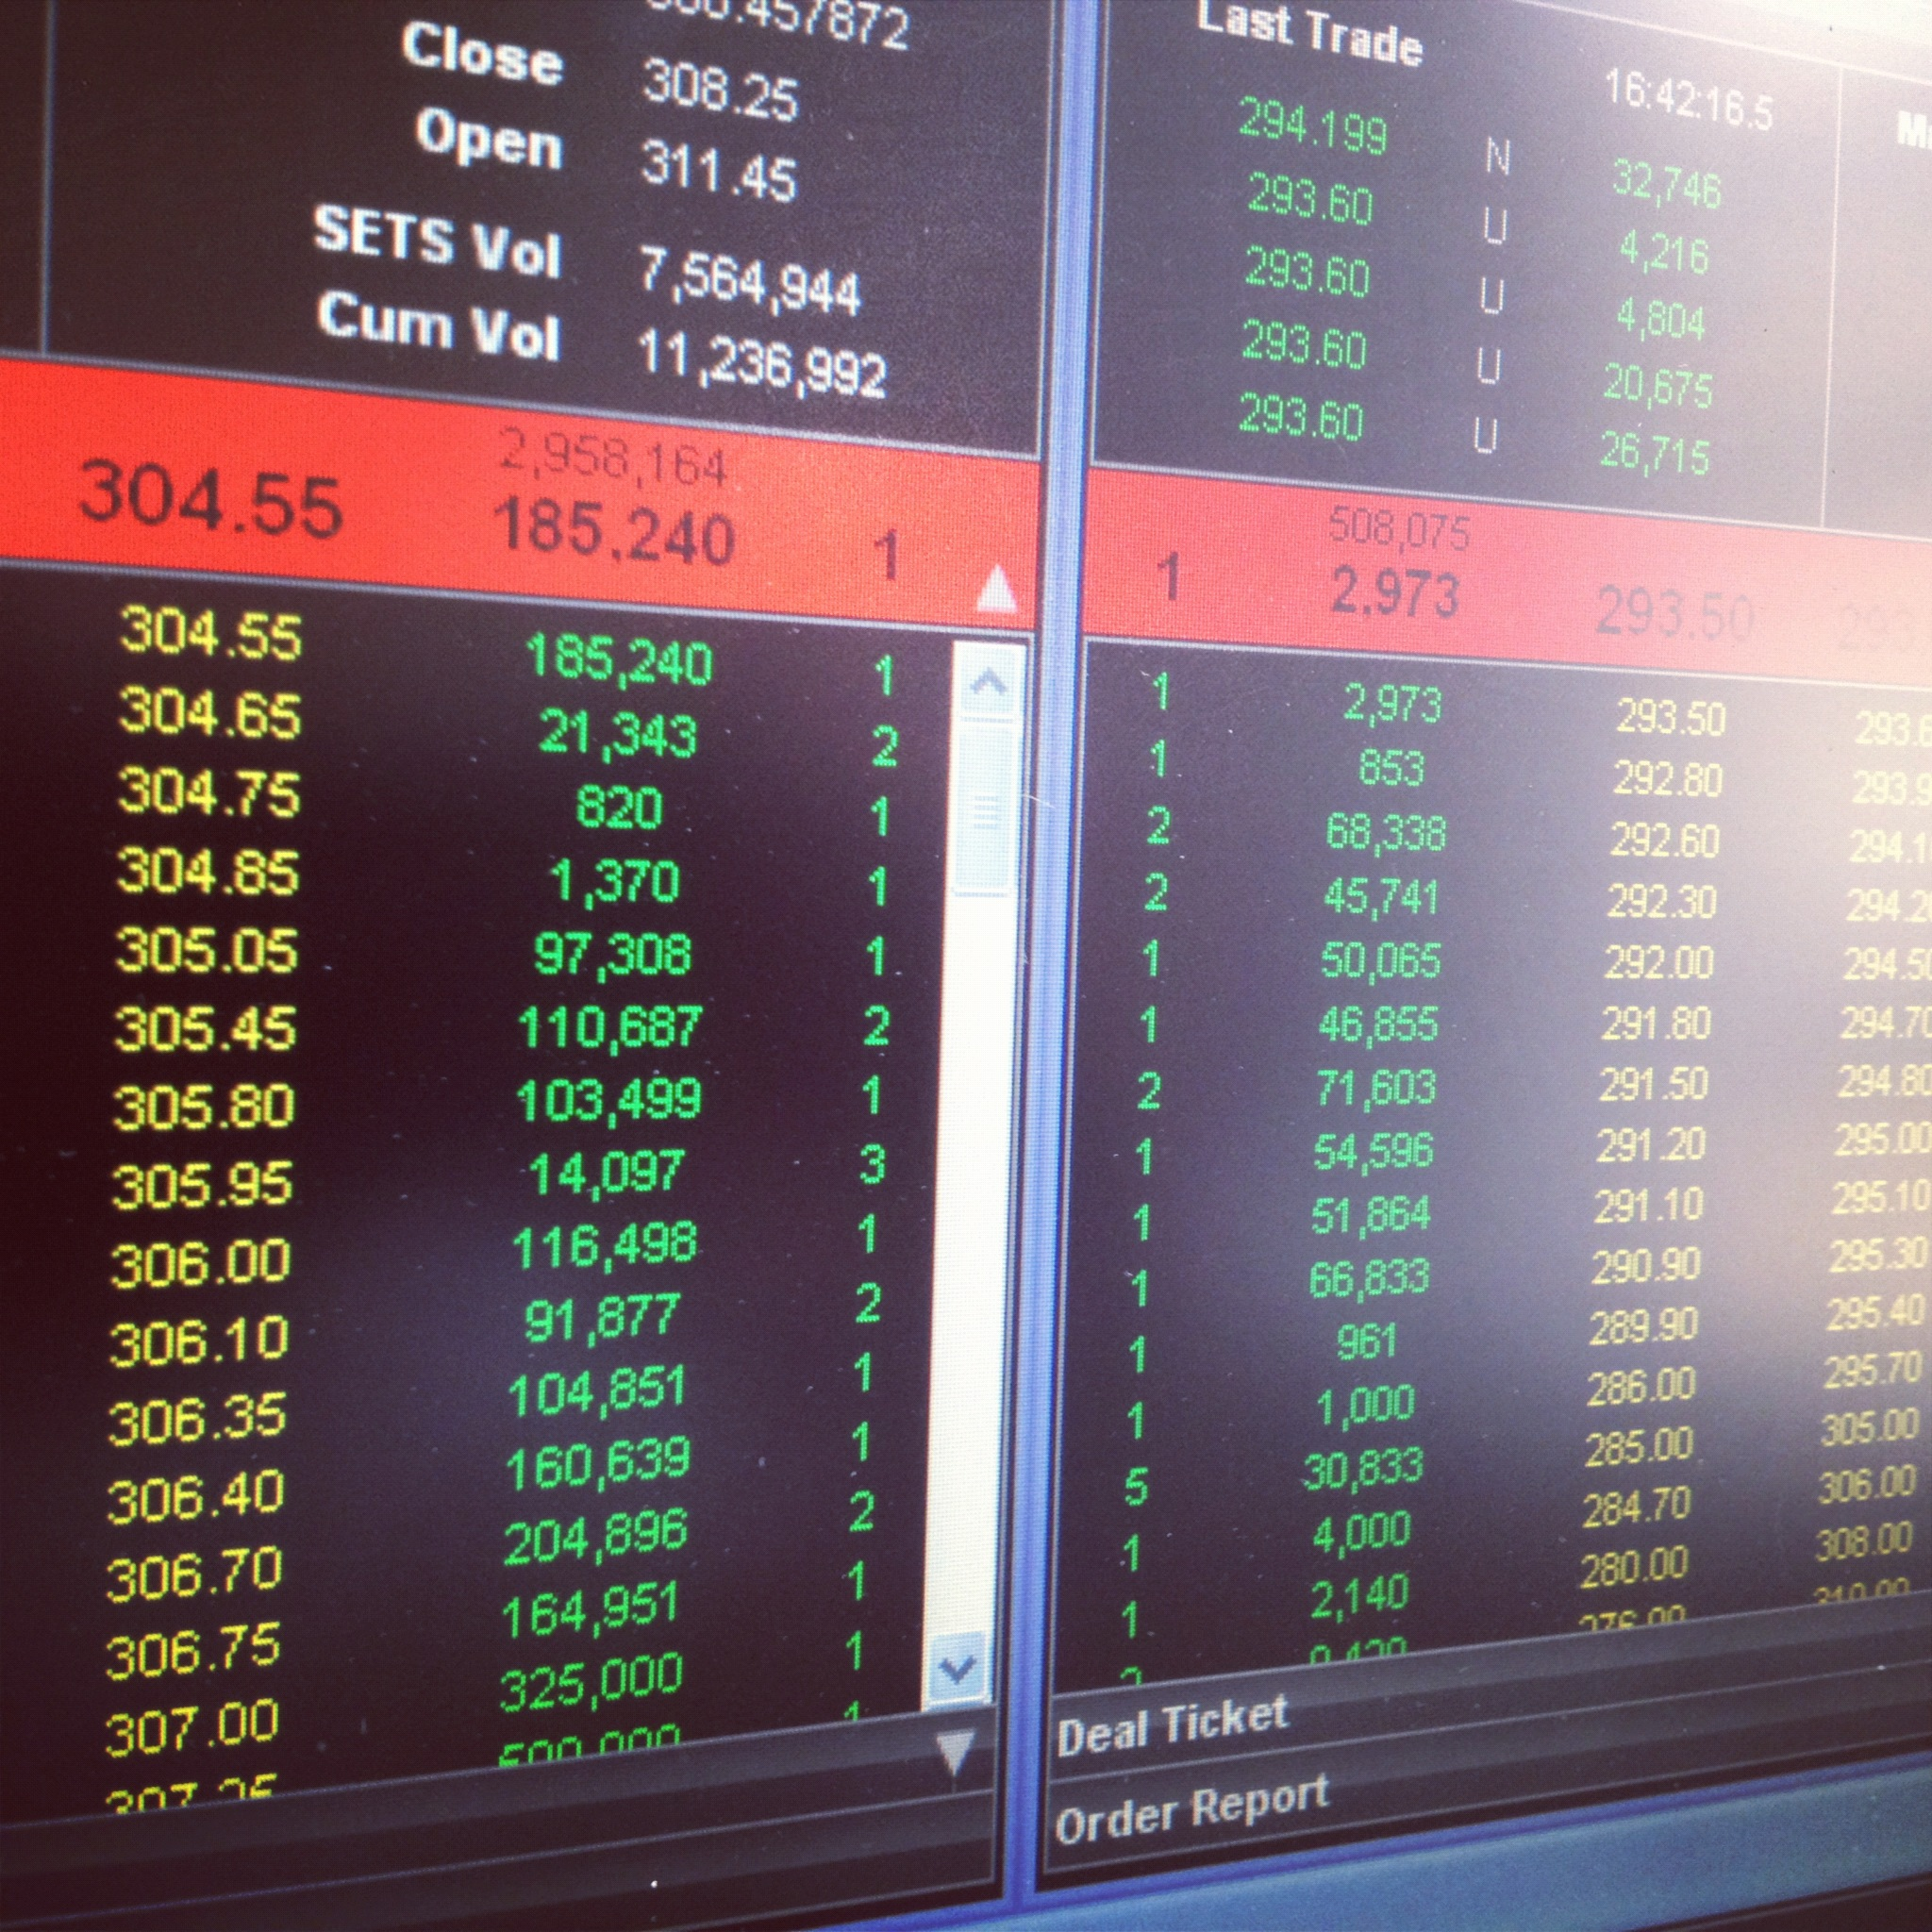 Trading cfd forex cfd cfd and online